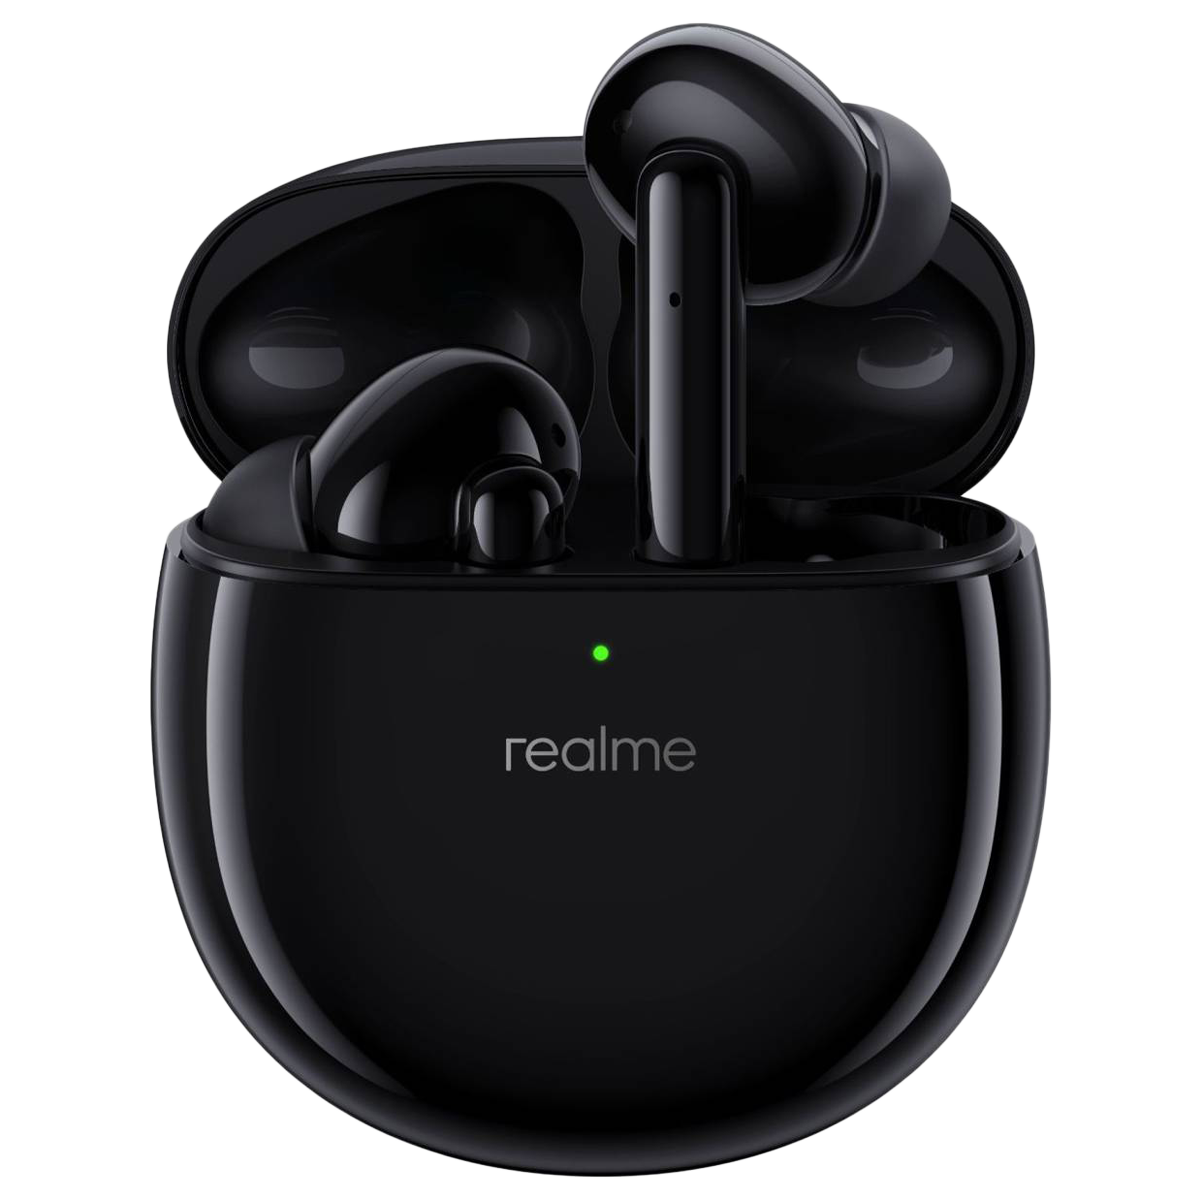 Realme Buds Air Pro In-Ear Active Noise Cancellation True Wireless Stereo Earbuds with Mic (Bluetooth 5.0, Dual-channel Transmission, RMA210, Black)